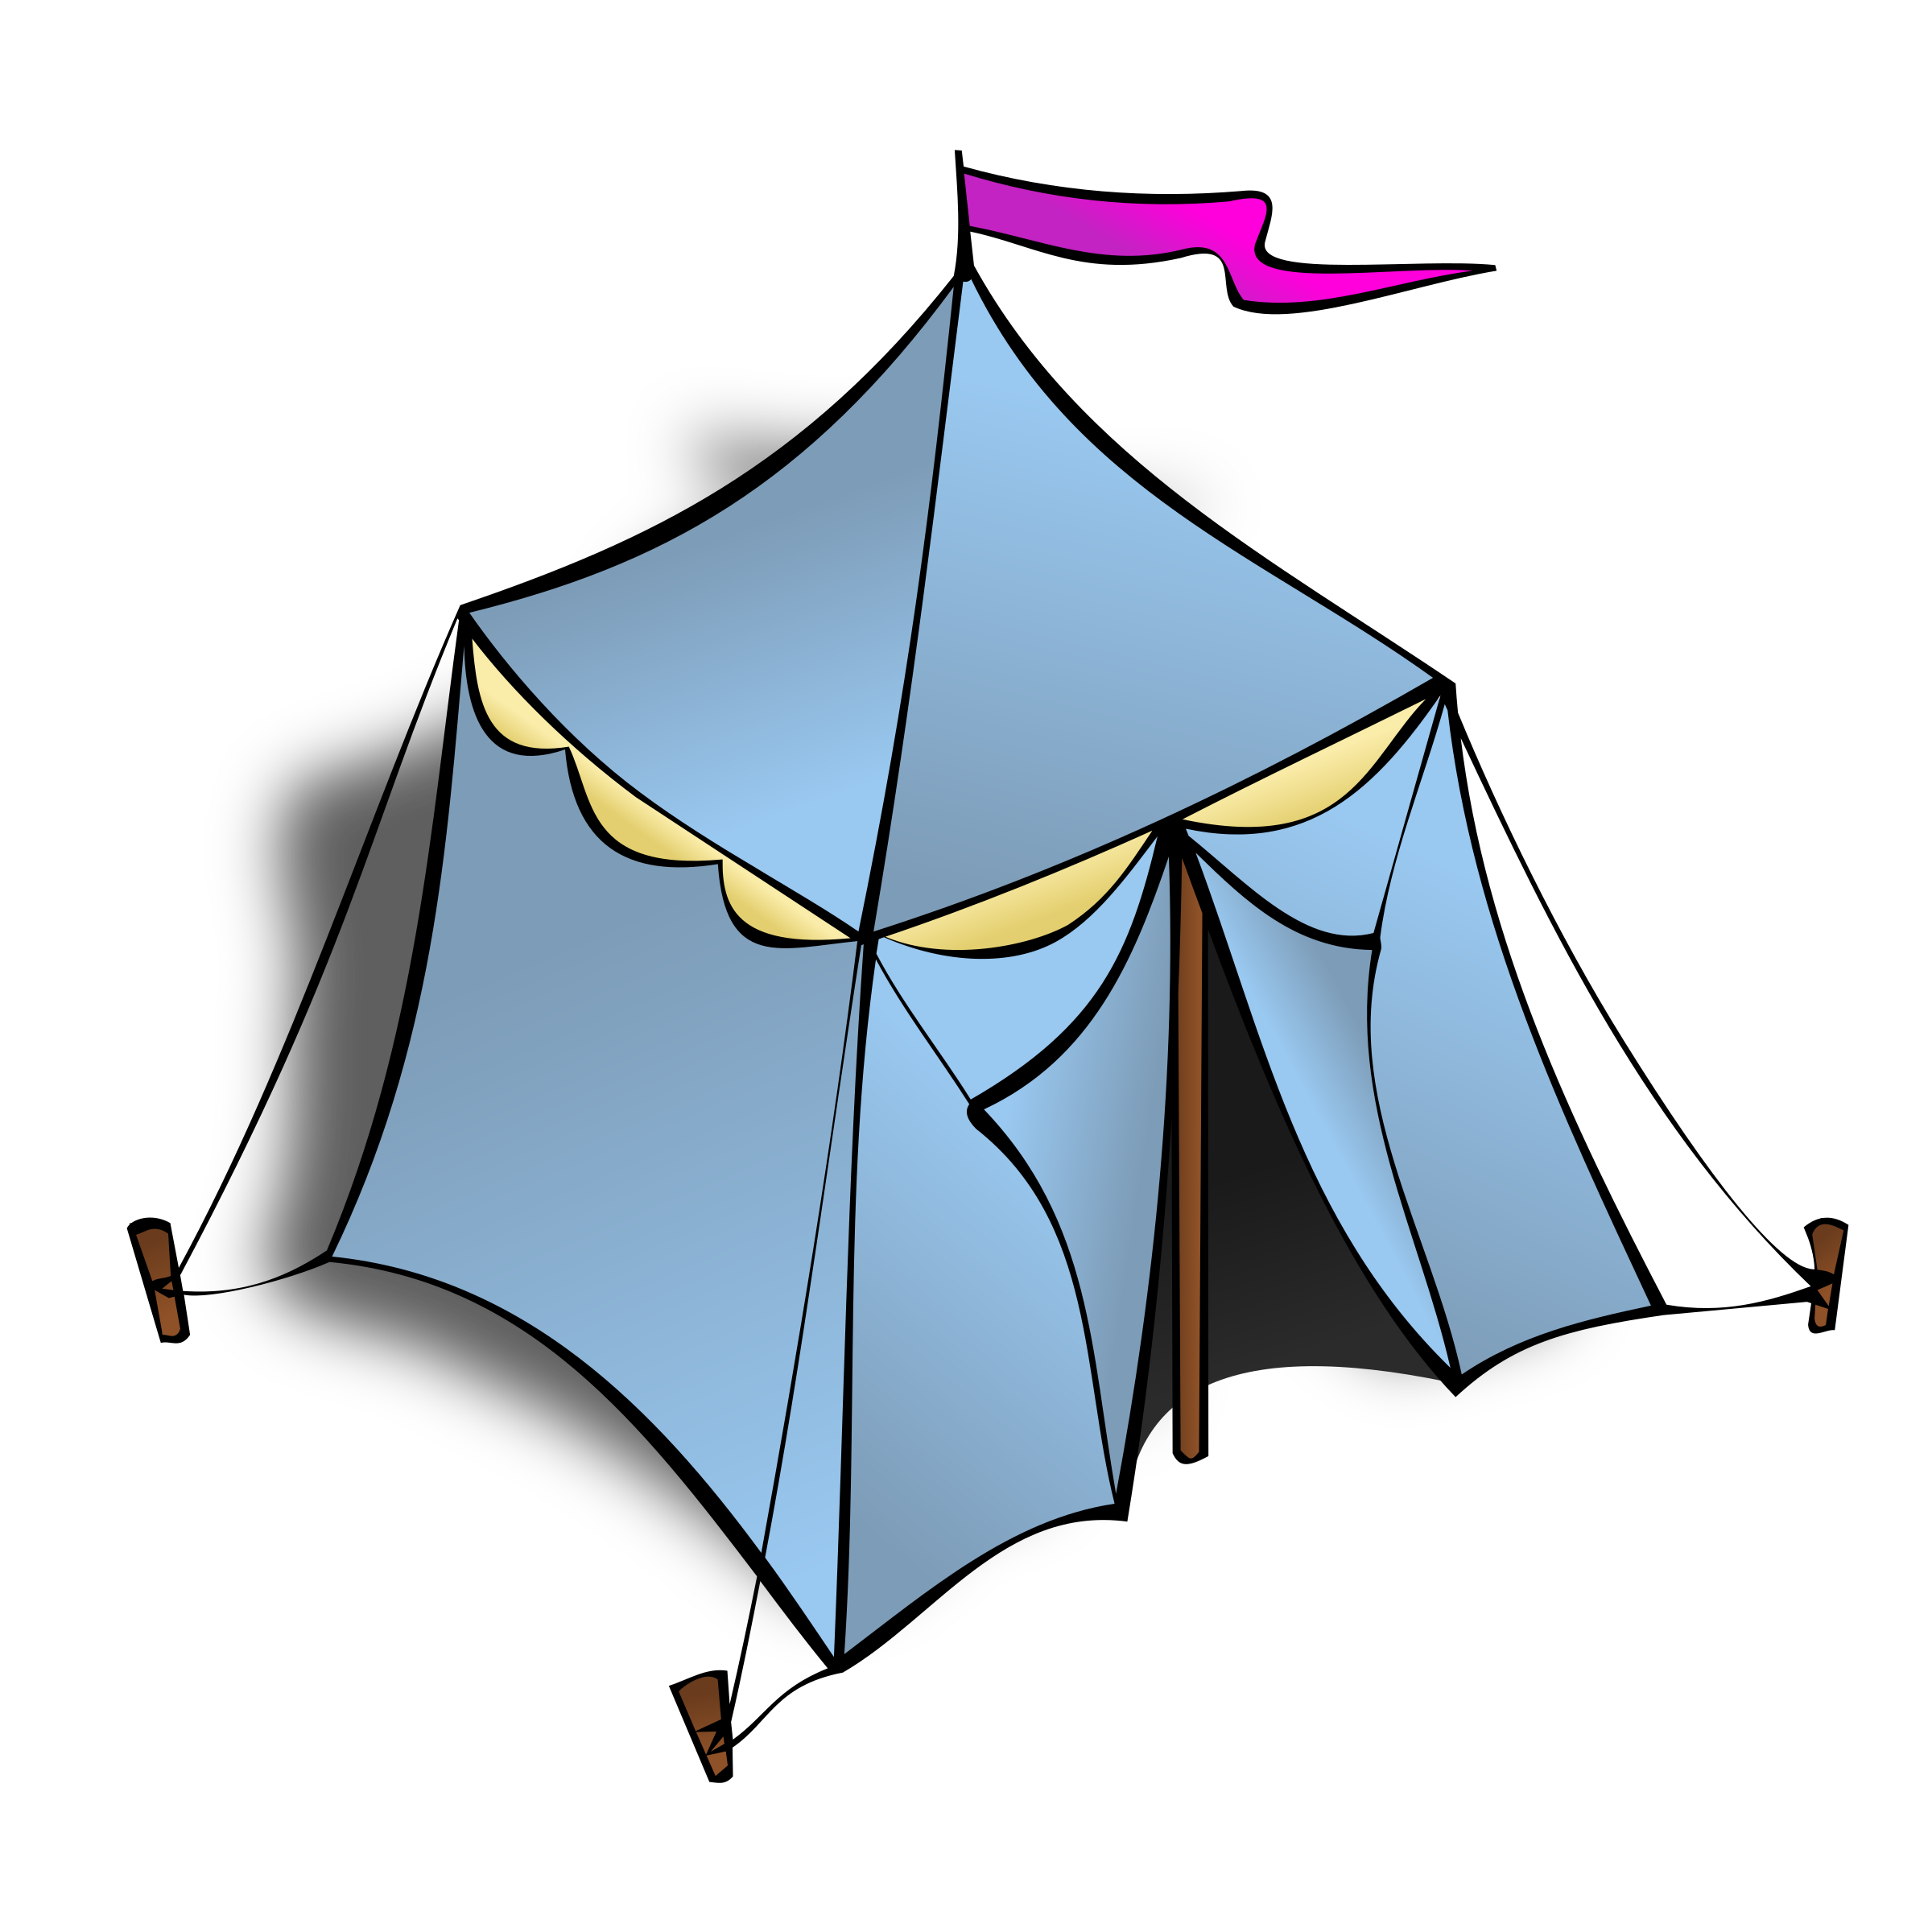 RPG map symbols: Tent by nicubunu